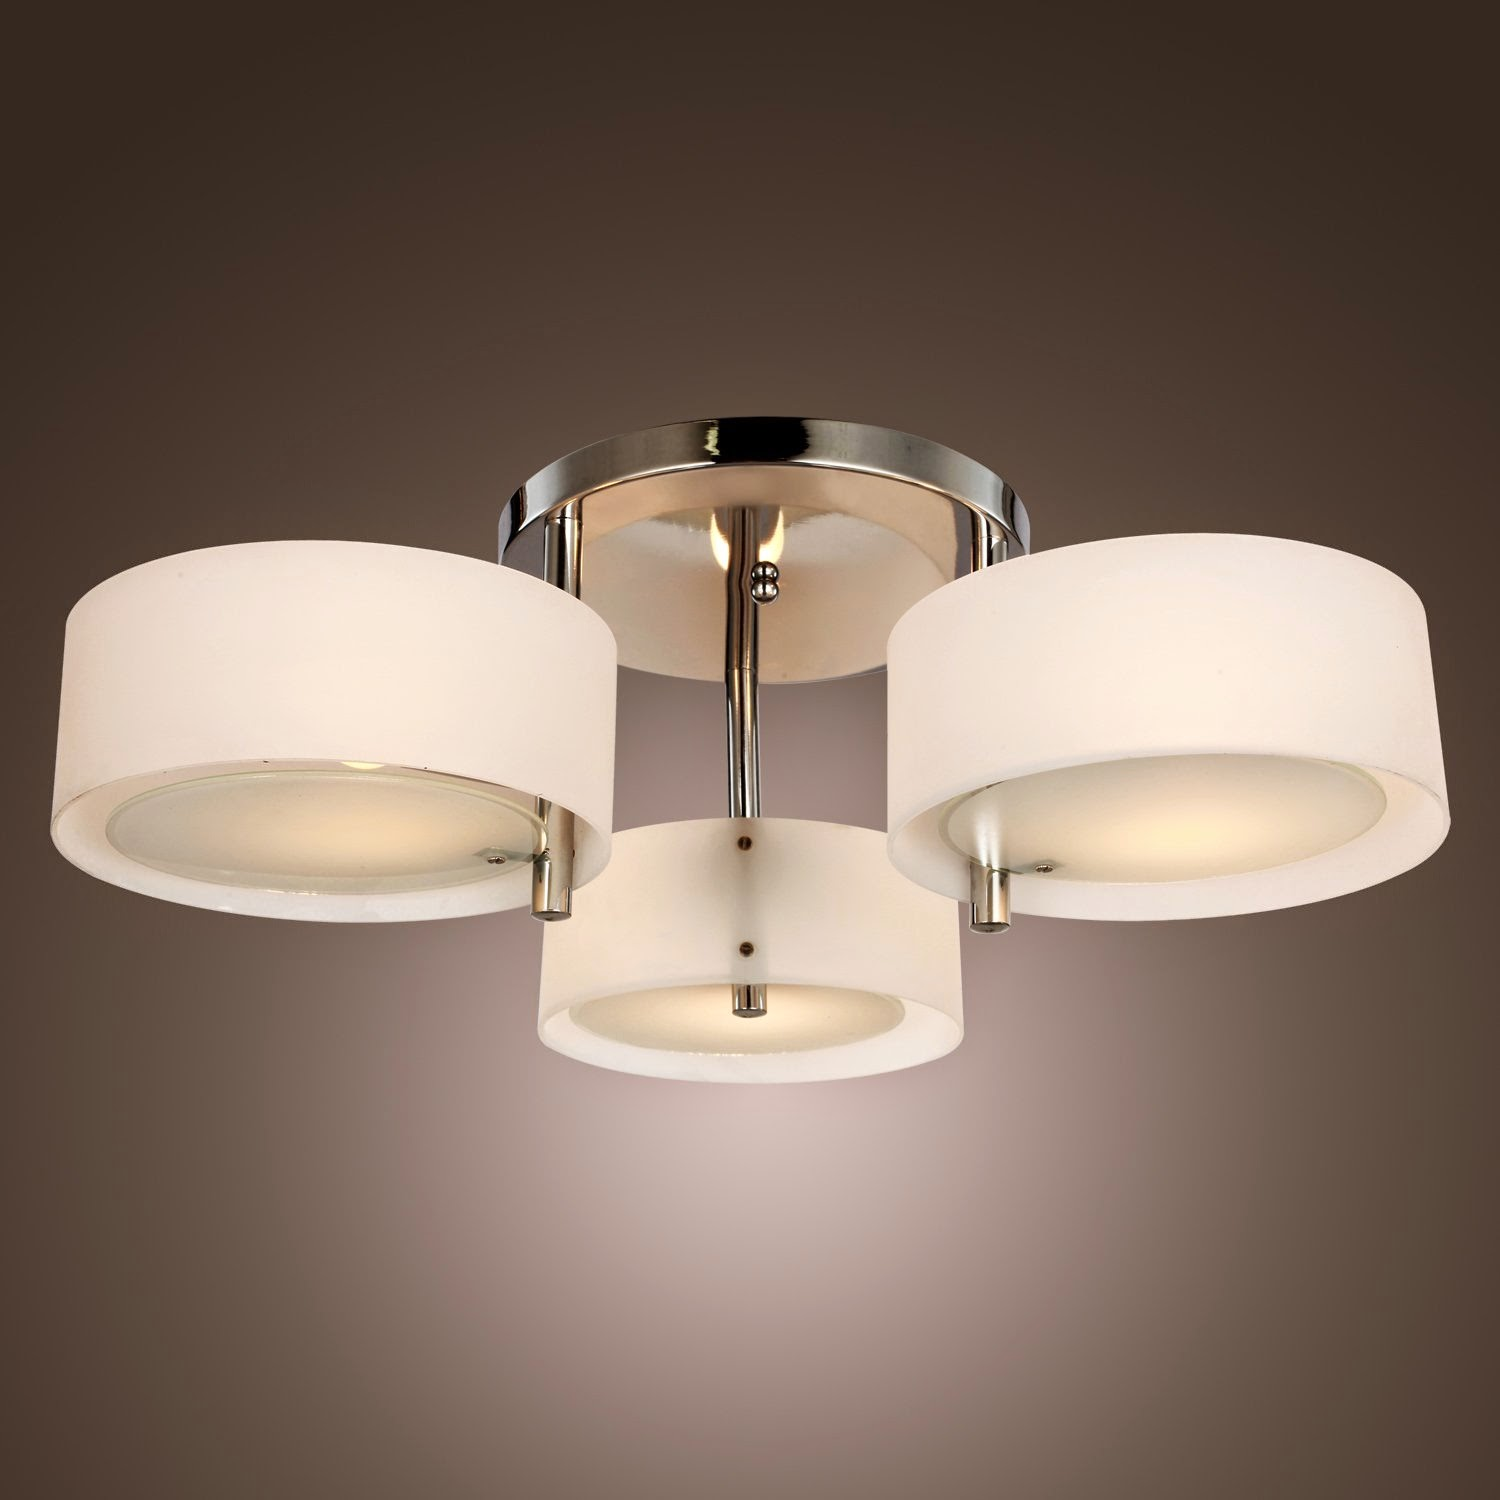 Ceiling Light Fixture with Outlet